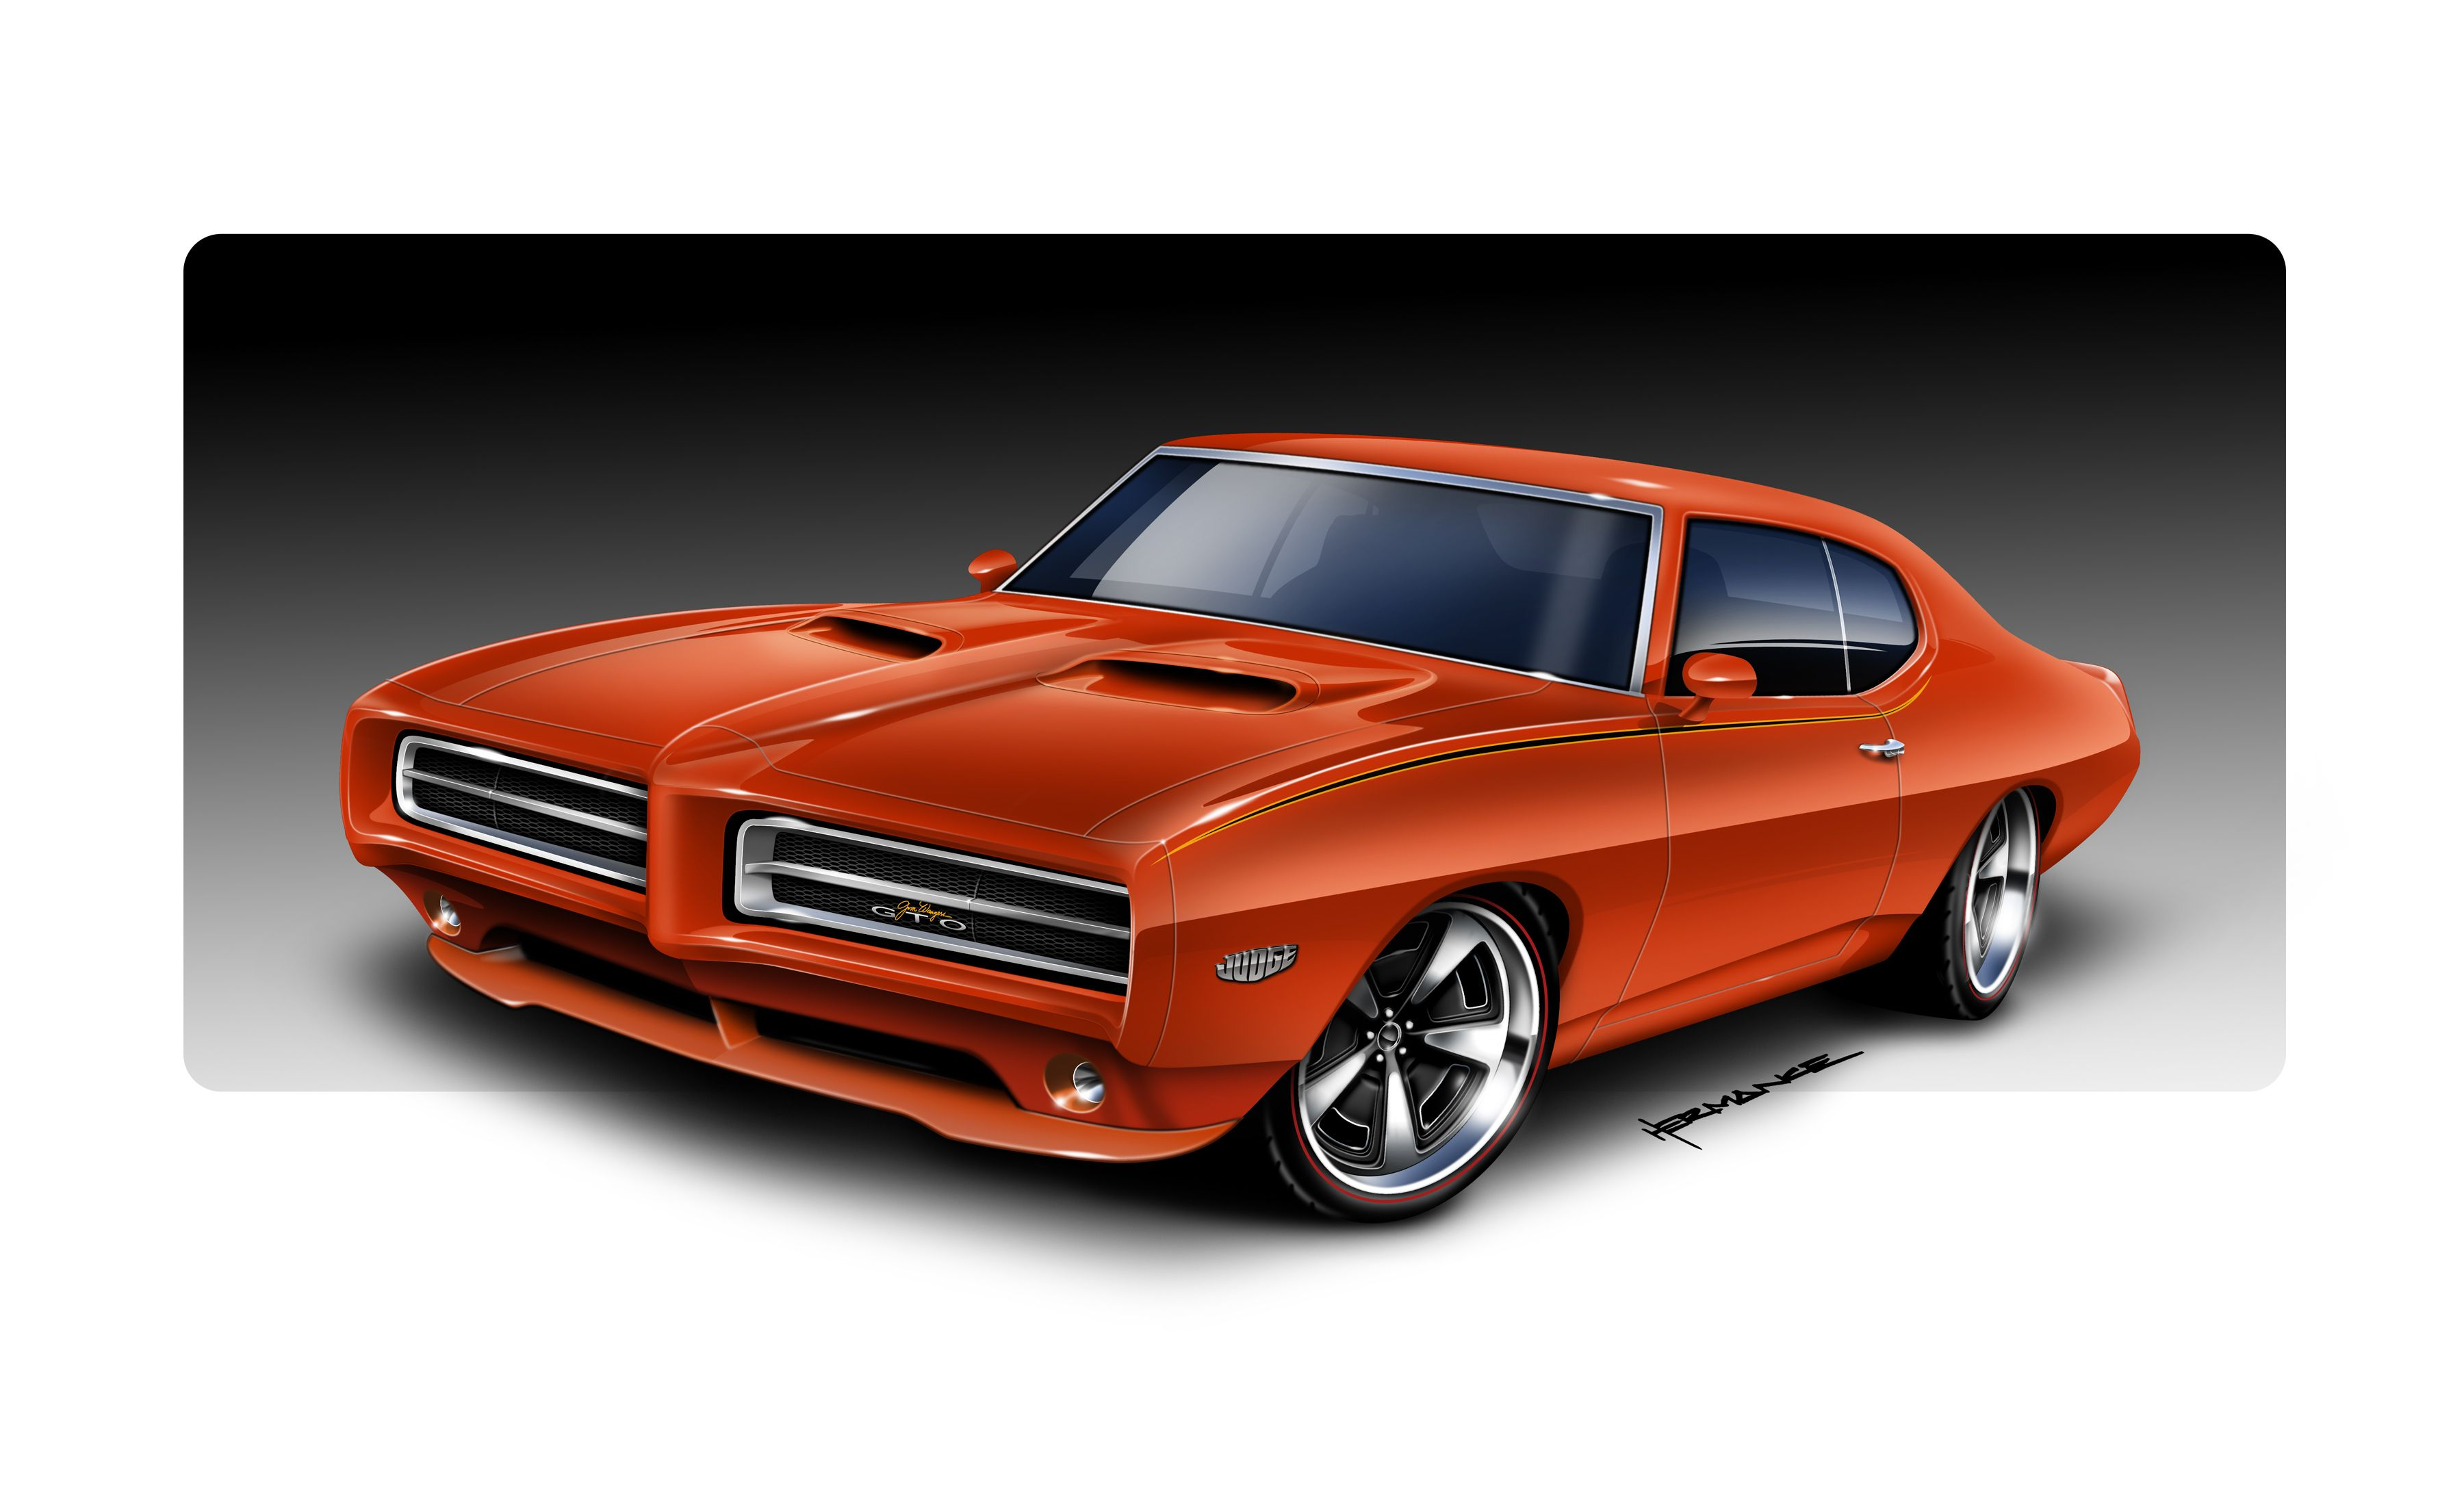 Pontiac GTO and Mustang GT